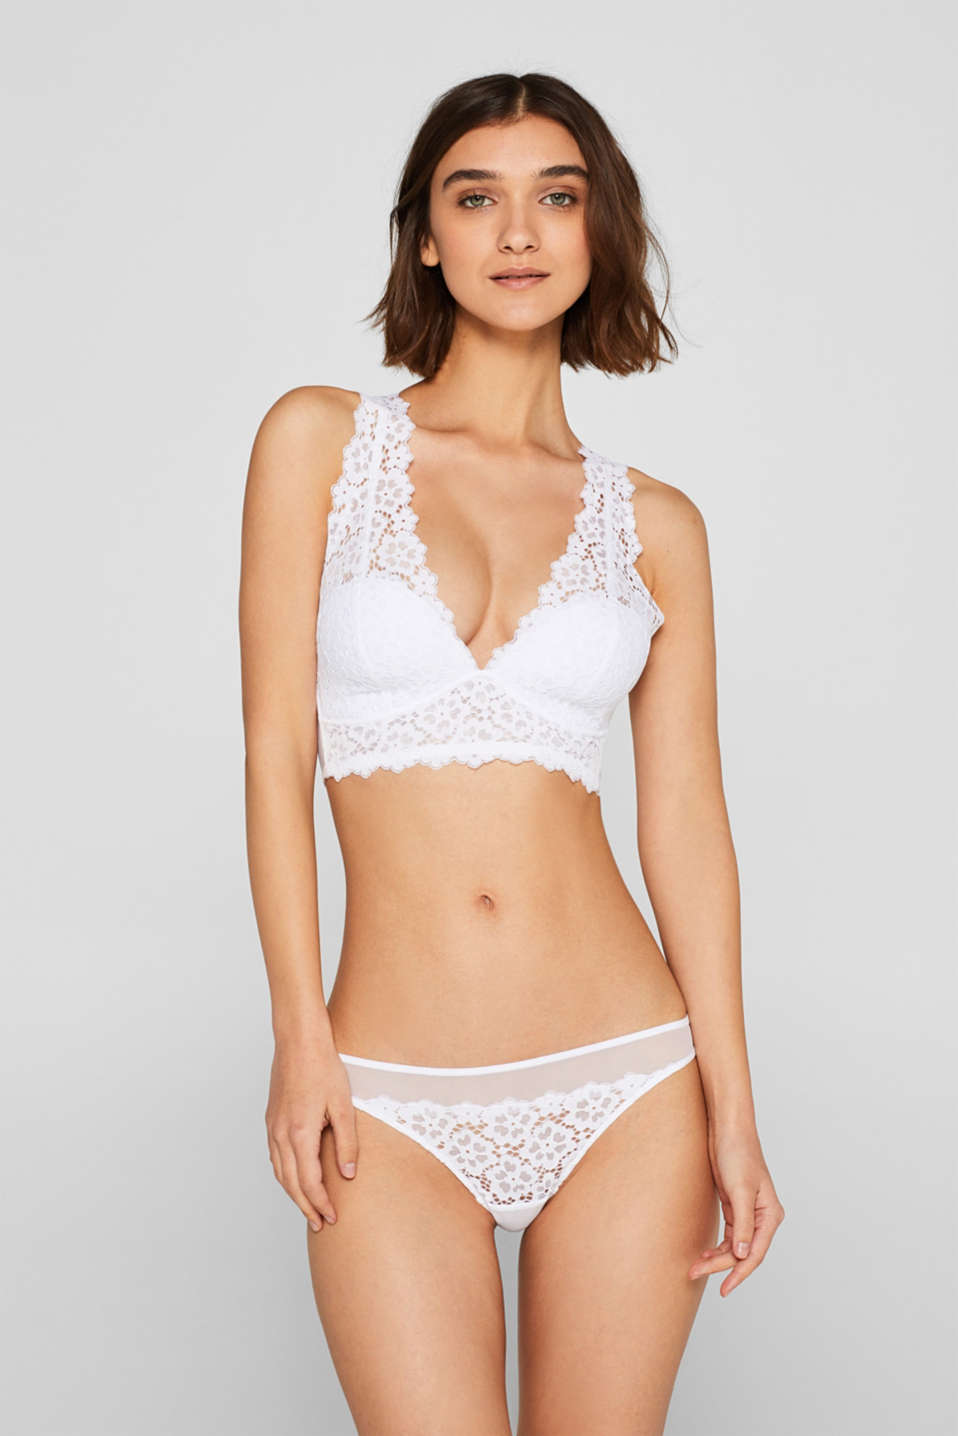 Esprit - Padded bralet made of tulle and lace